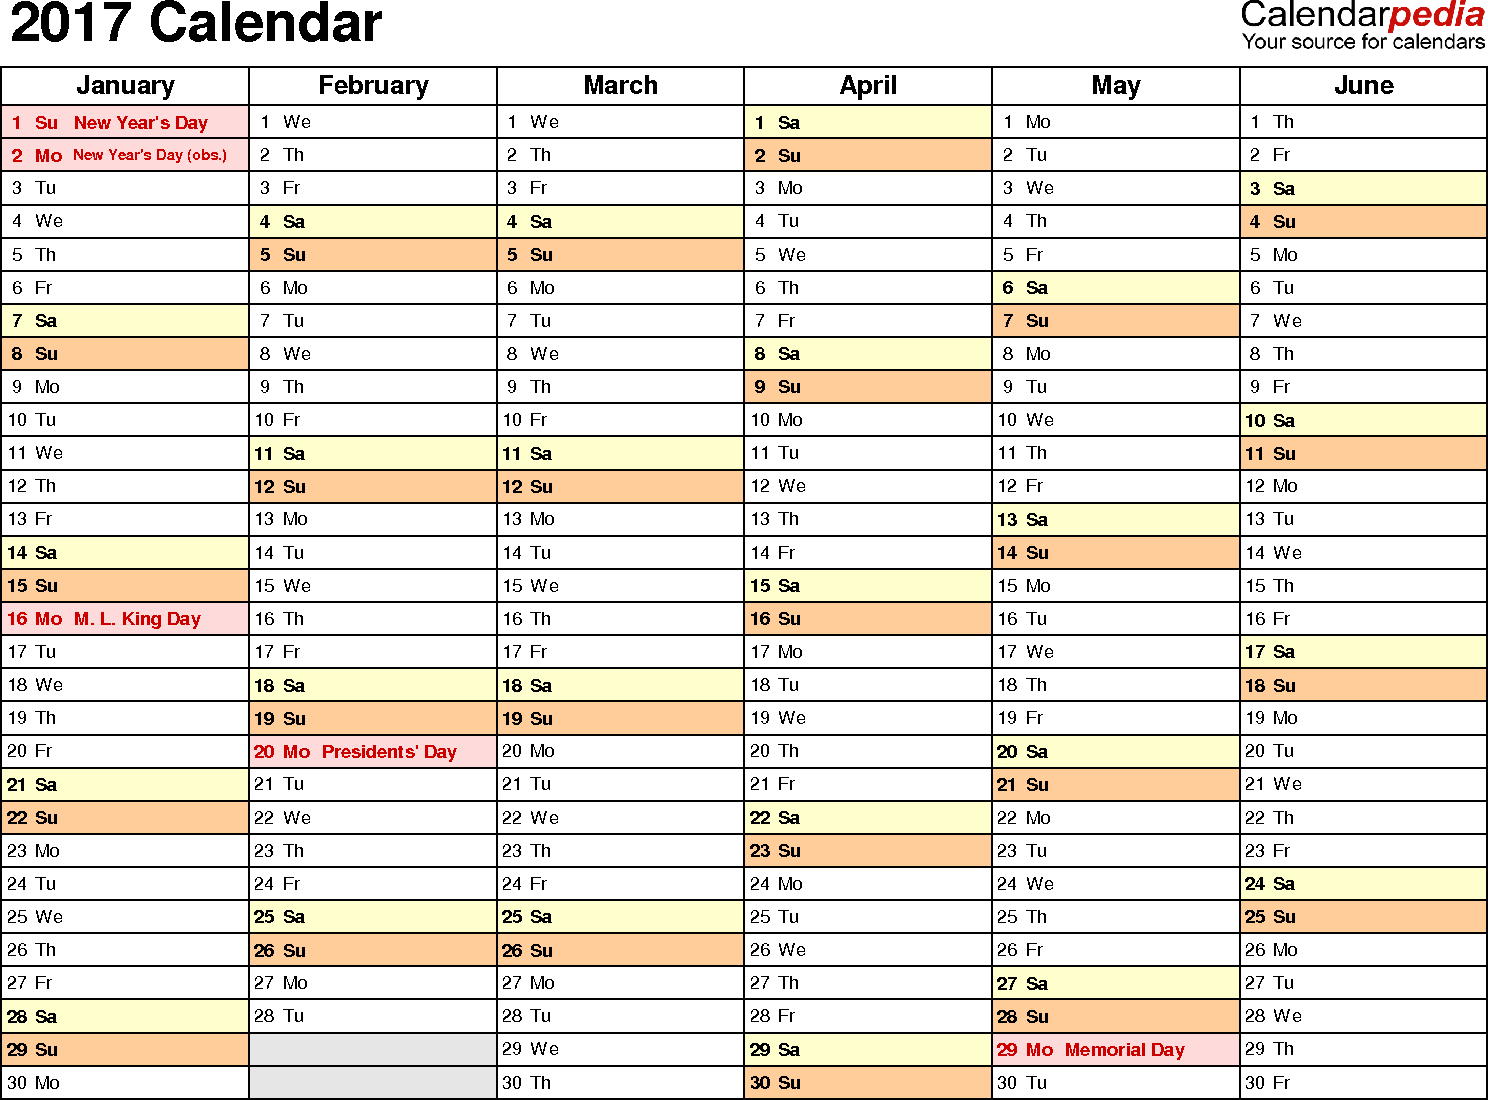 Ediblewildsus  Marvellous  Calendar  Download  Free Printable Excel Templates Xls With Marvelous Template   Calendar For Excel Months Horizontally  Pages Landscape Orientation With Attractive Converting A Text File To Excel Also Shibuya Excel Hotel Tokyu Shibuya Tokyo Japan In Addition Excel Vba Create Text File And Turn On Macros In Excel As Well As How To Create A Report On Excel Additionally Excel High School Test Answers From Calendarpediacom With Ediblewildsus  Marvelous  Calendar  Download  Free Printable Excel Templates Xls With Attractive Template   Calendar For Excel Months Horizontally  Pages Landscape Orientation And Marvellous Converting A Text File To Excel Also Shibuya Excel Hotel Tokyu Shibuya Tokyo Japan In Addition Excel Vba Create Text File From Calendarpediacom